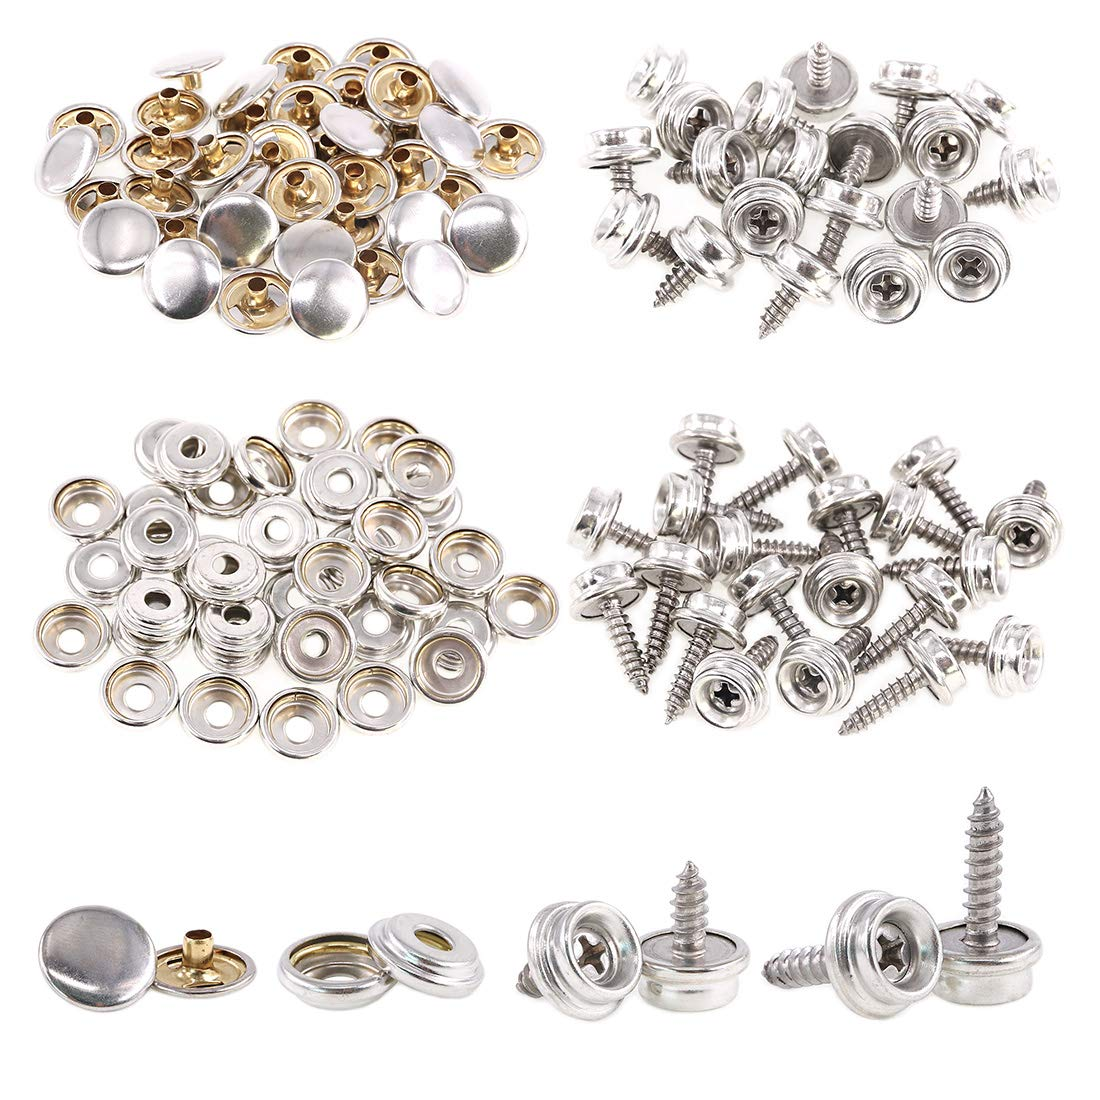 Rustark 120-Pcs Sliver Fastener Screw Snaps Boat Canvas Cover Snap Button Cap Marine Grade 3//8 Socket with Stainless Steel Screw with Snap Setting Tool Kit for Furniture Canvas Fabric Boats